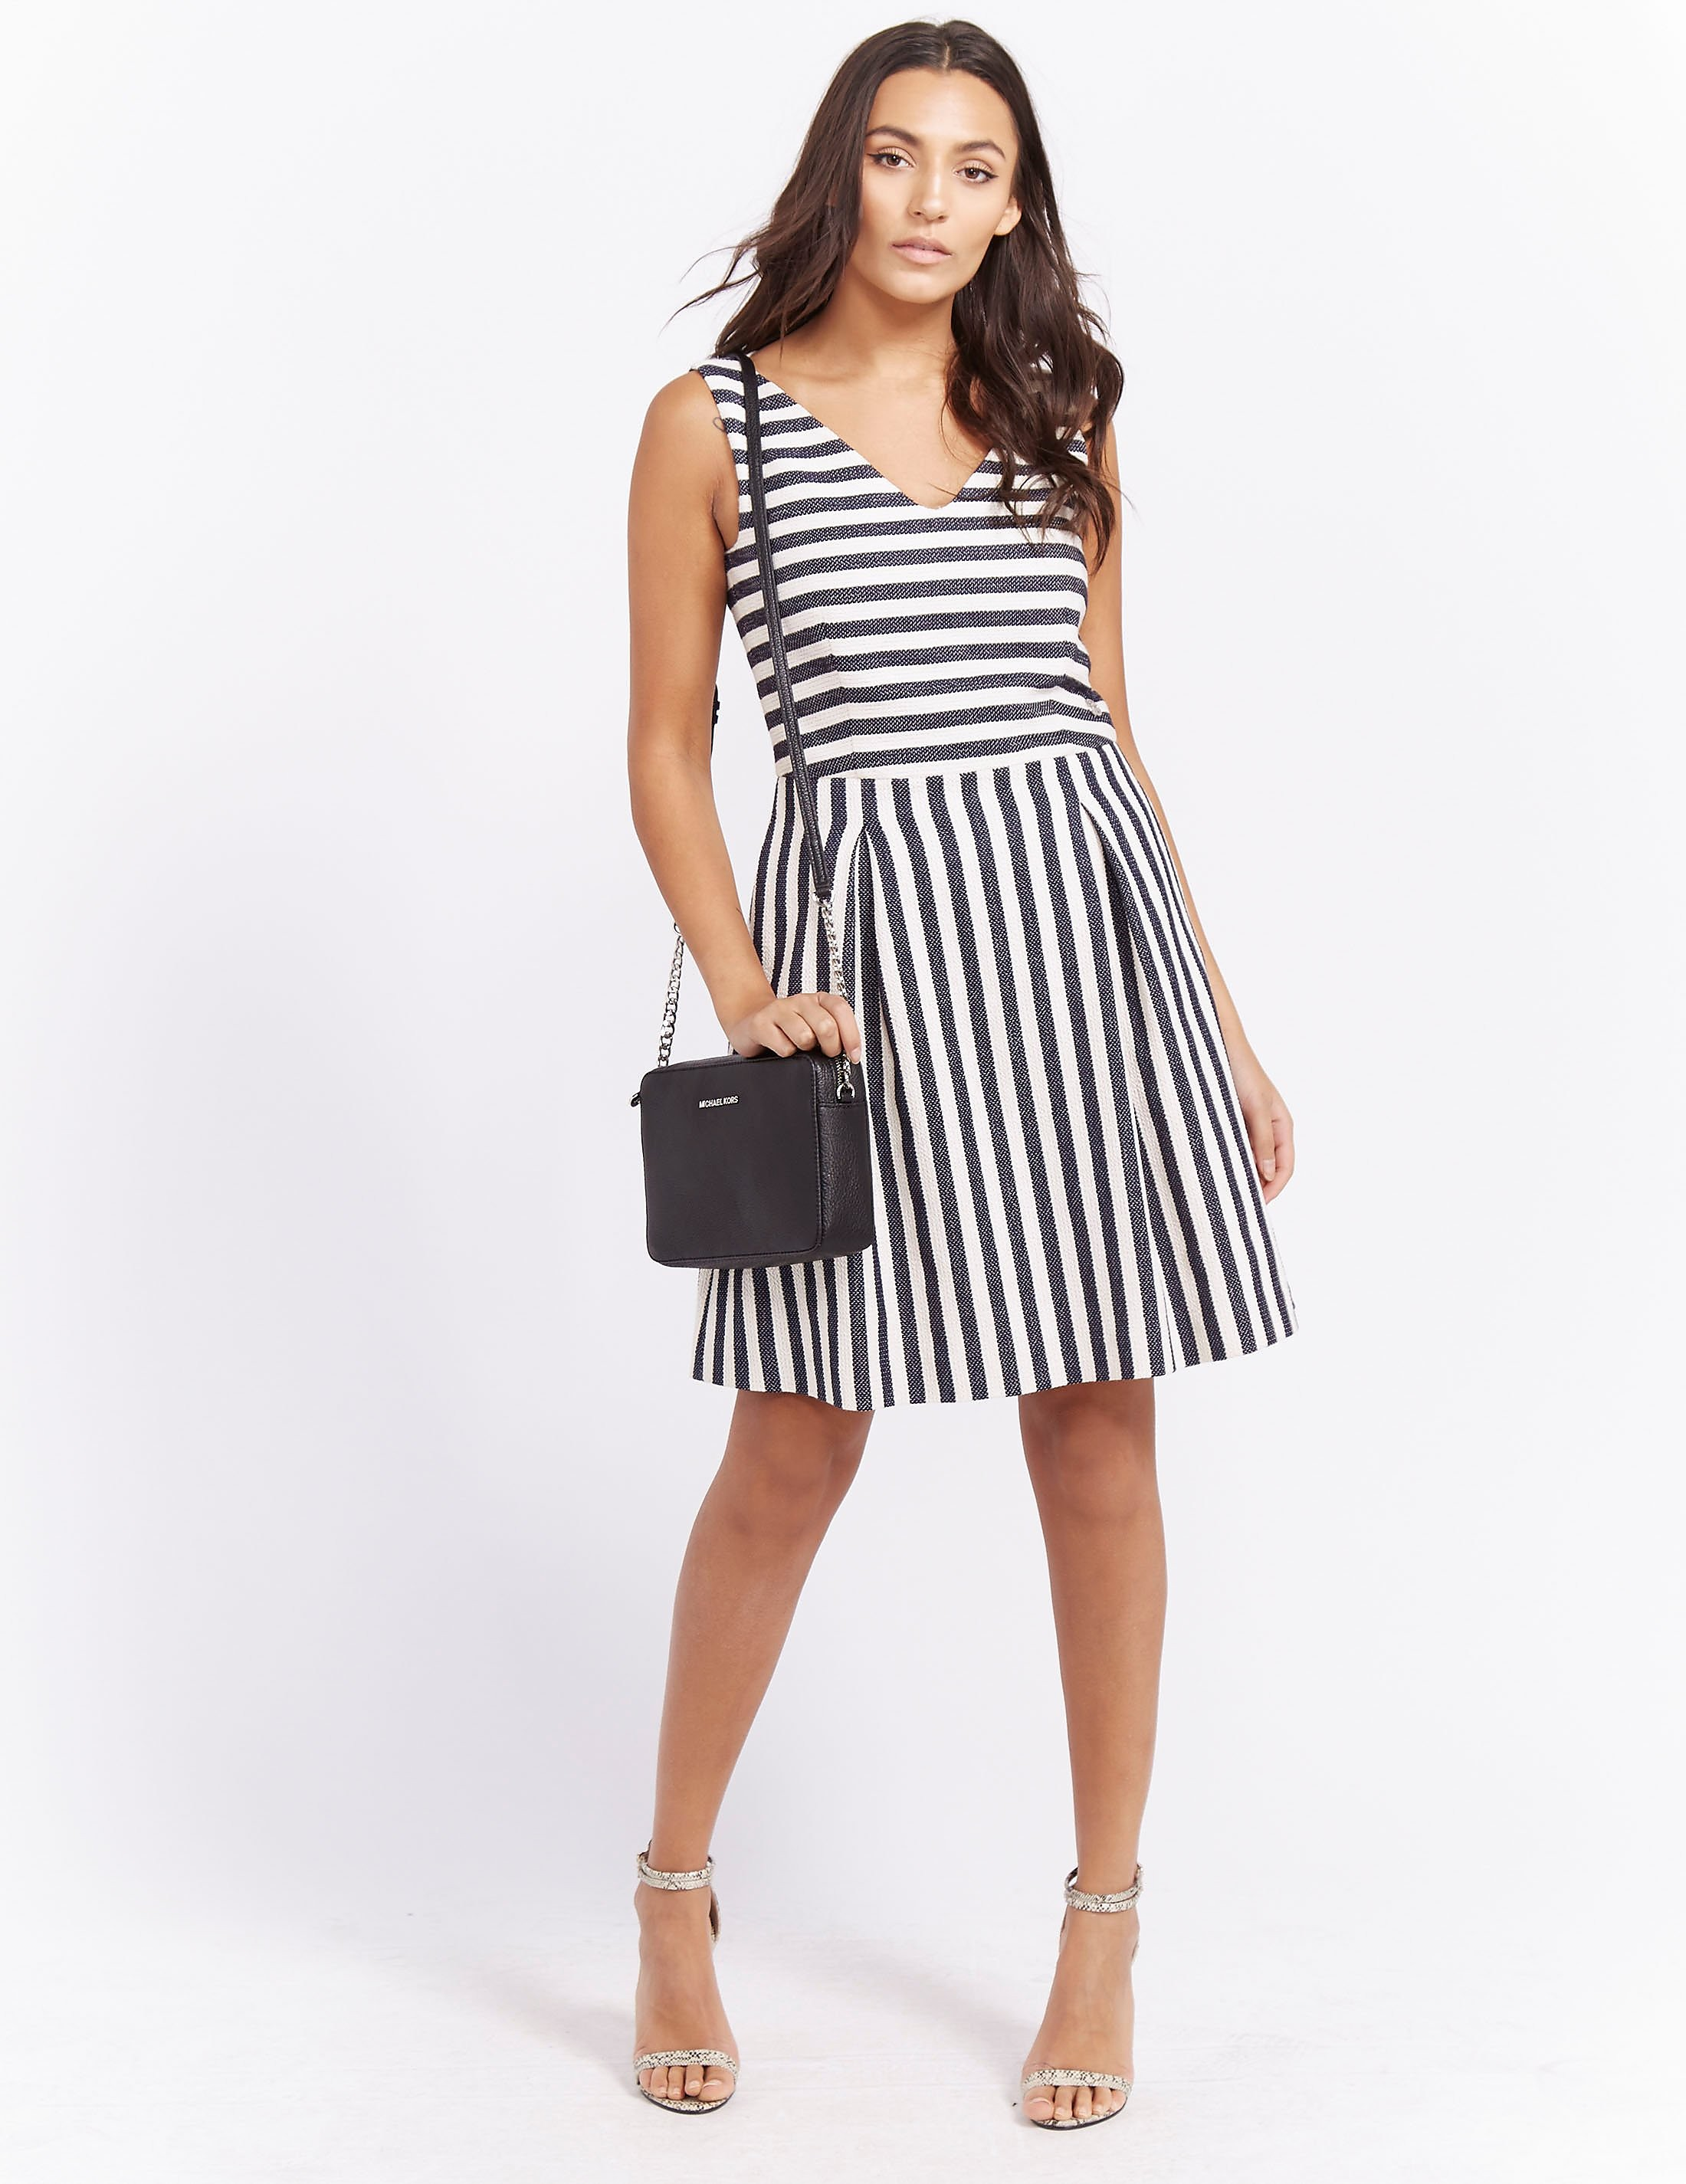 Armani Jeans Striped Dress